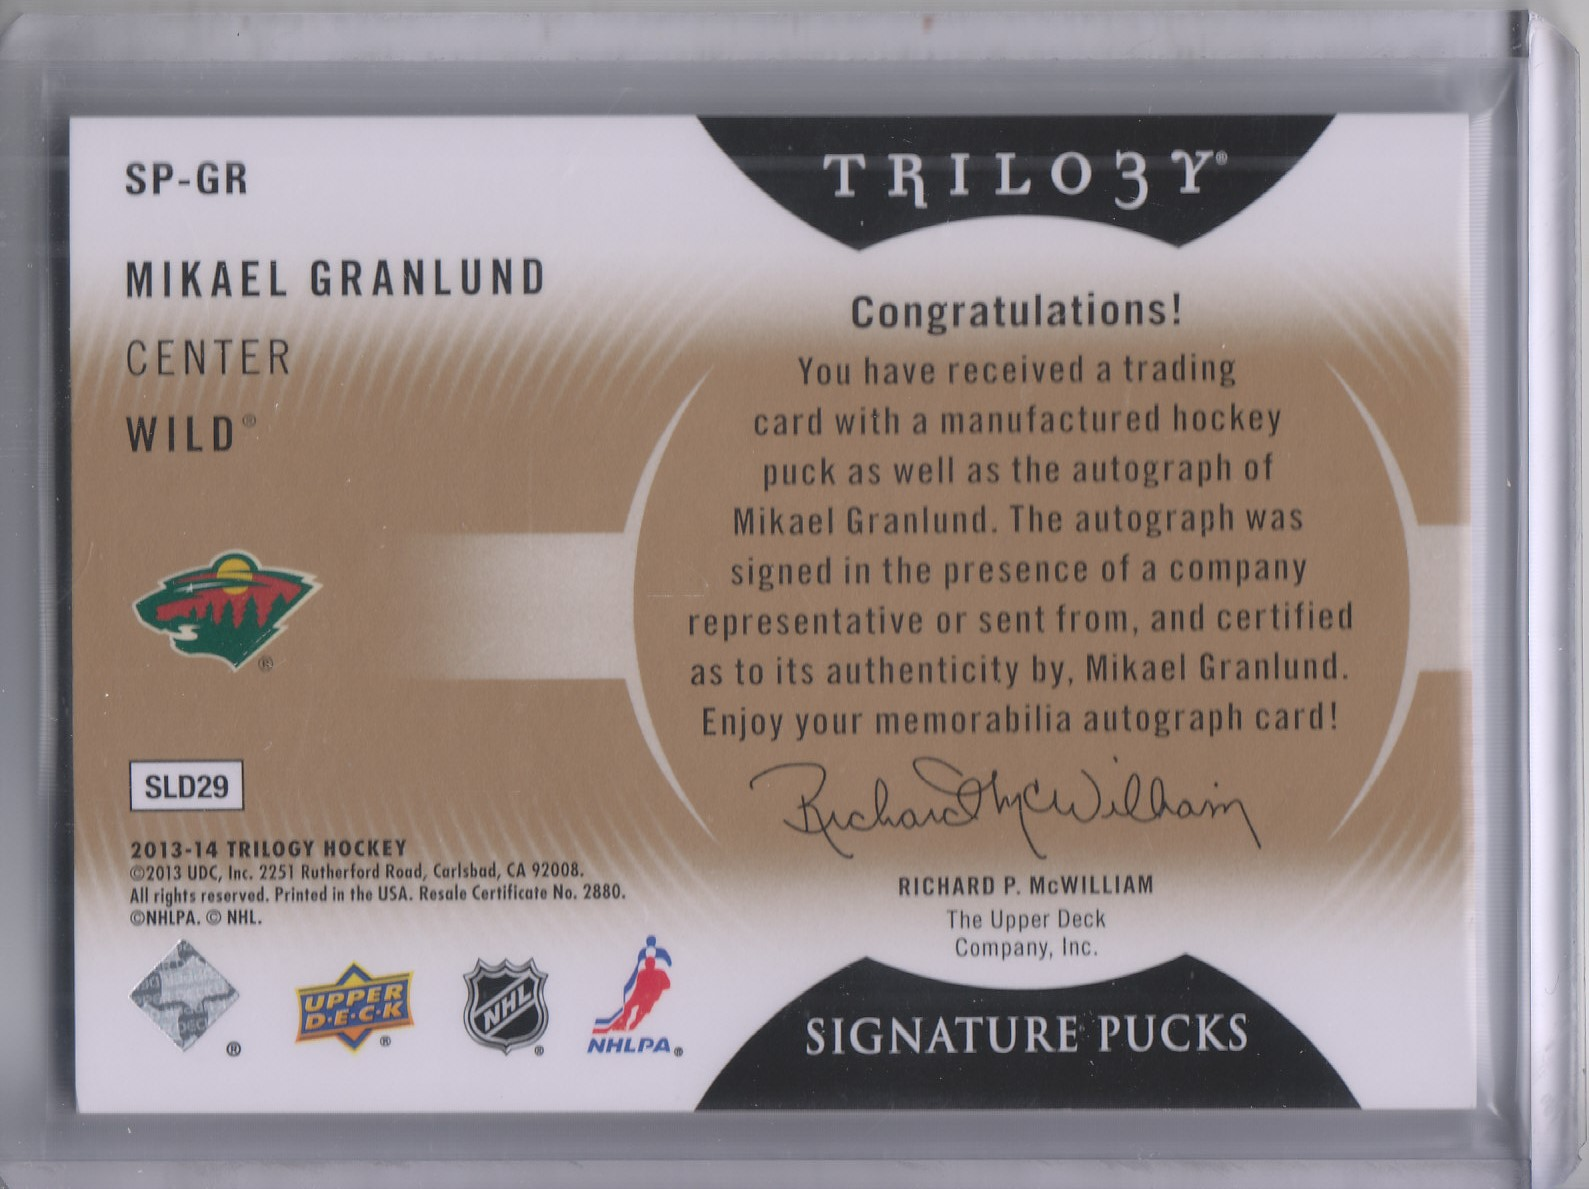 2013-14 Upper Deck Trilogy Signature Pucks #SPGR Mikael Granlund E back image